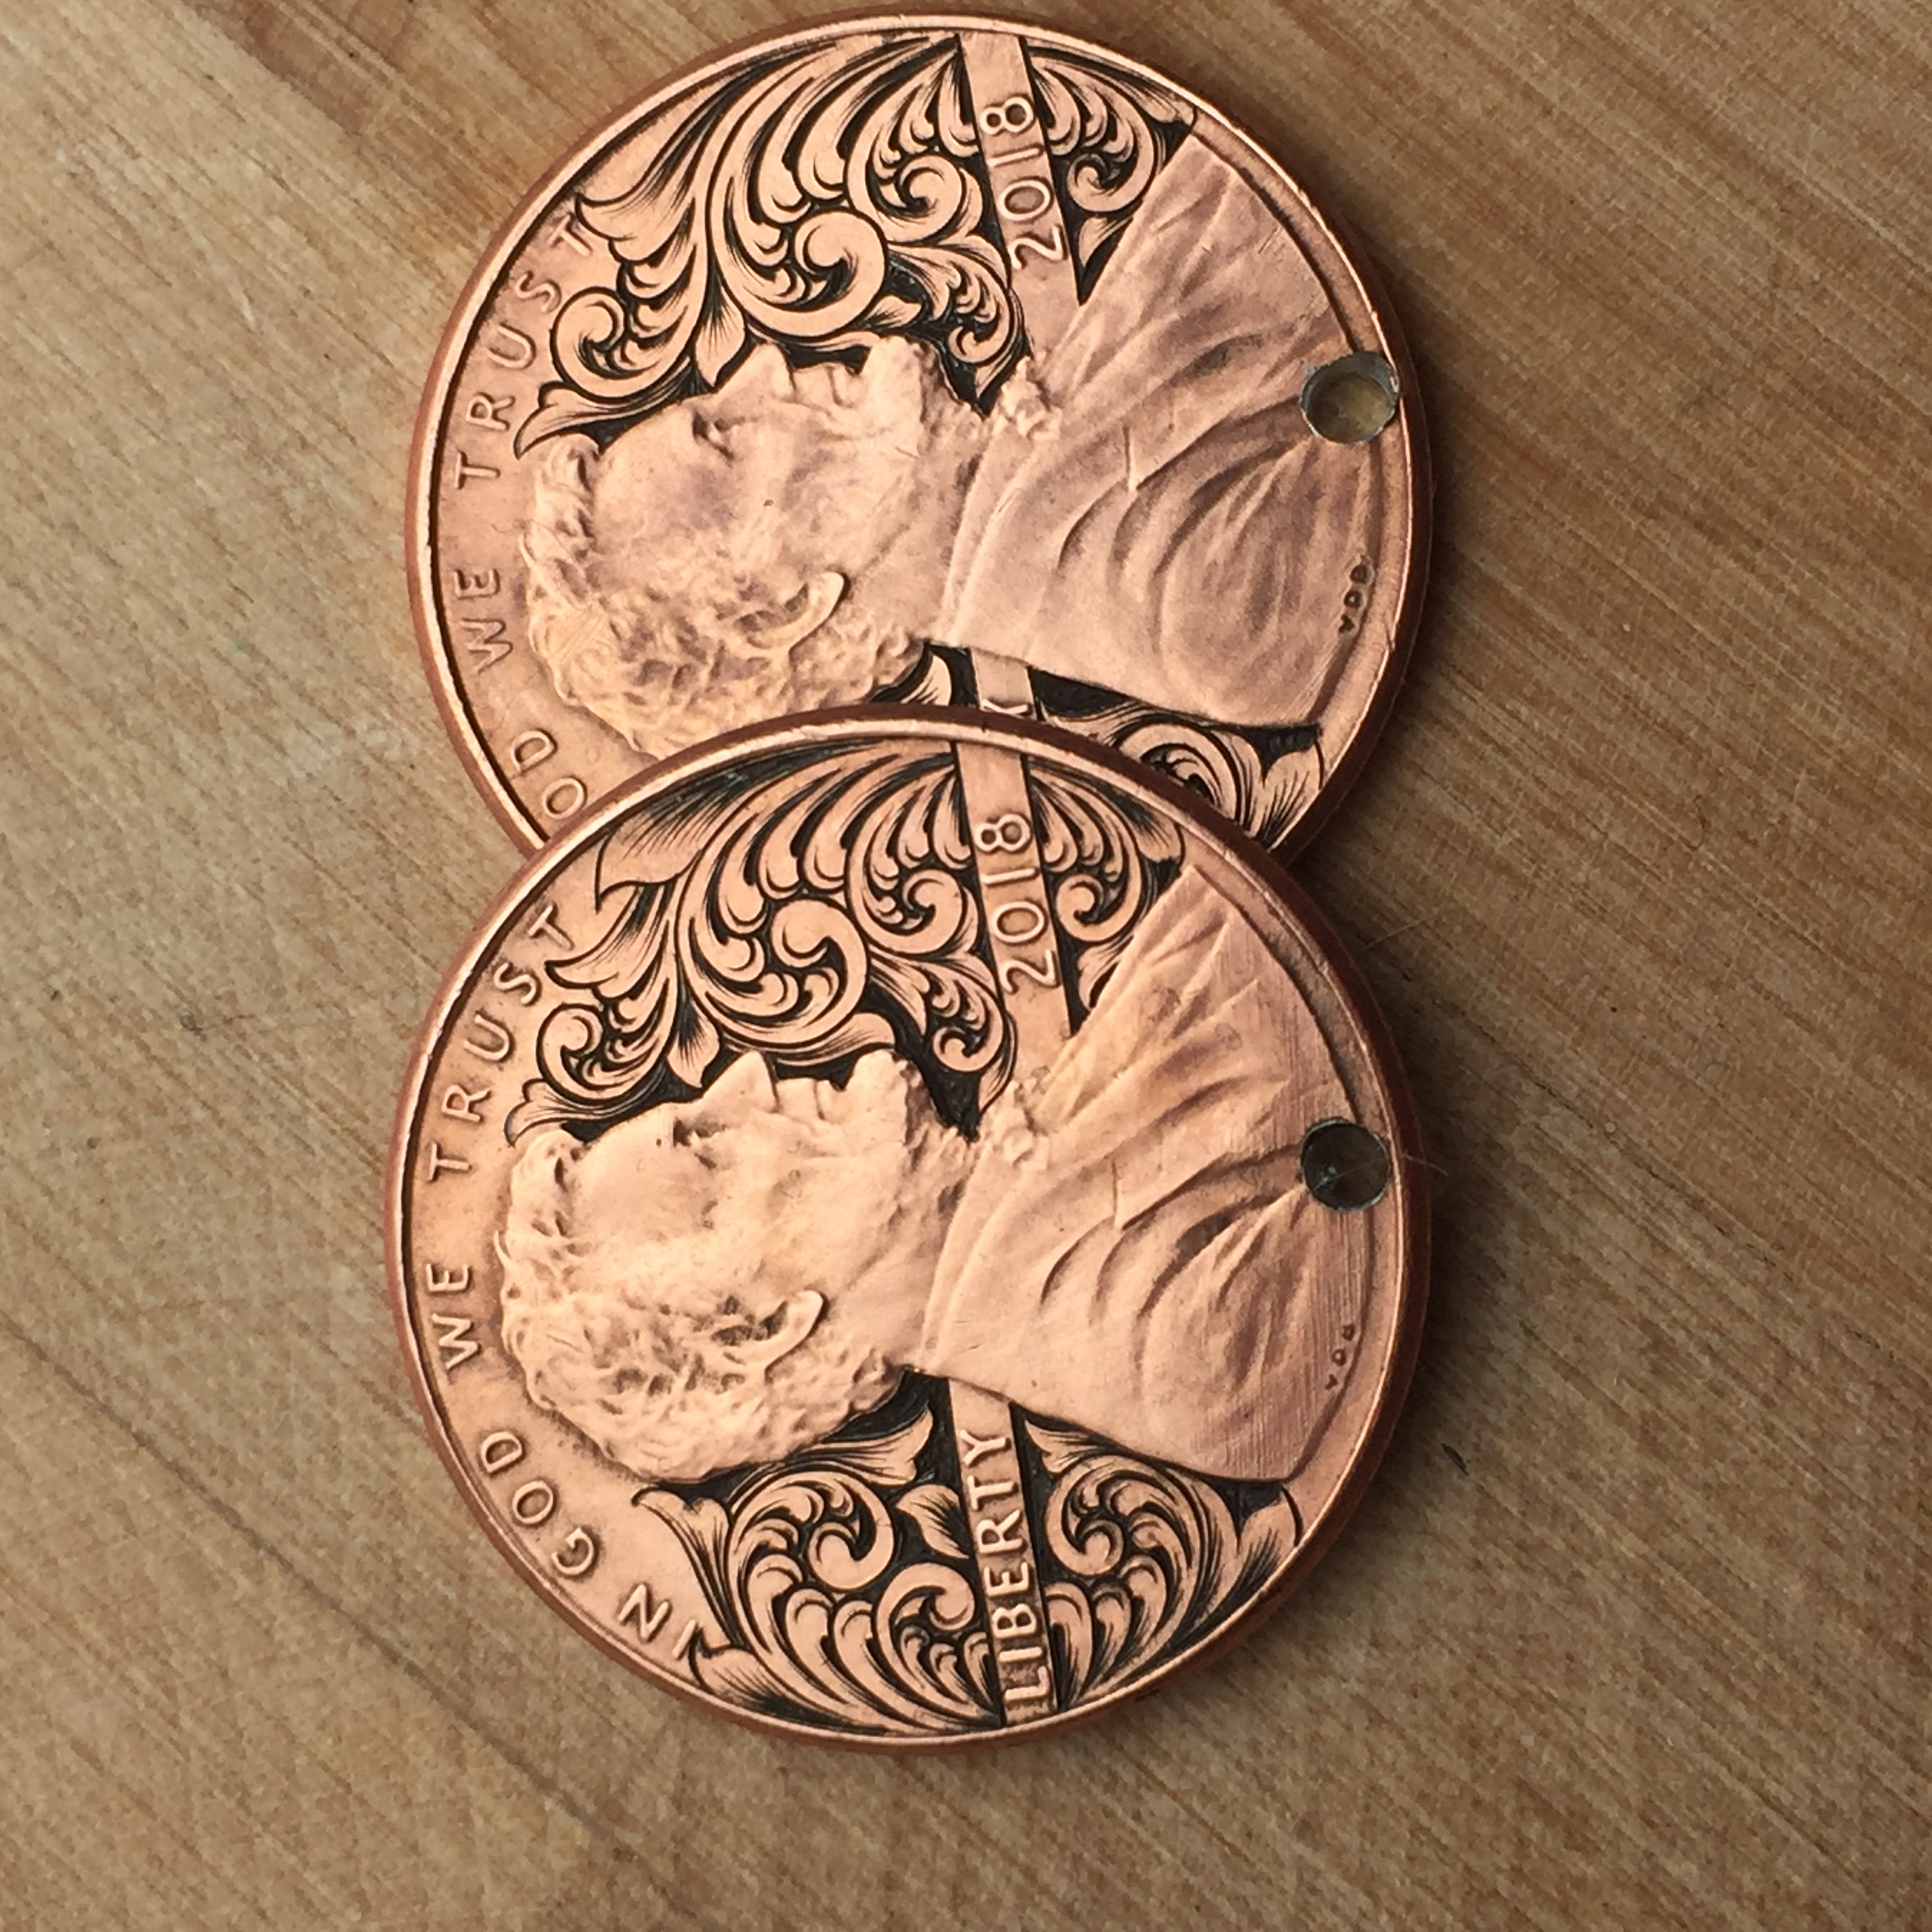 2 hand engraved pennies